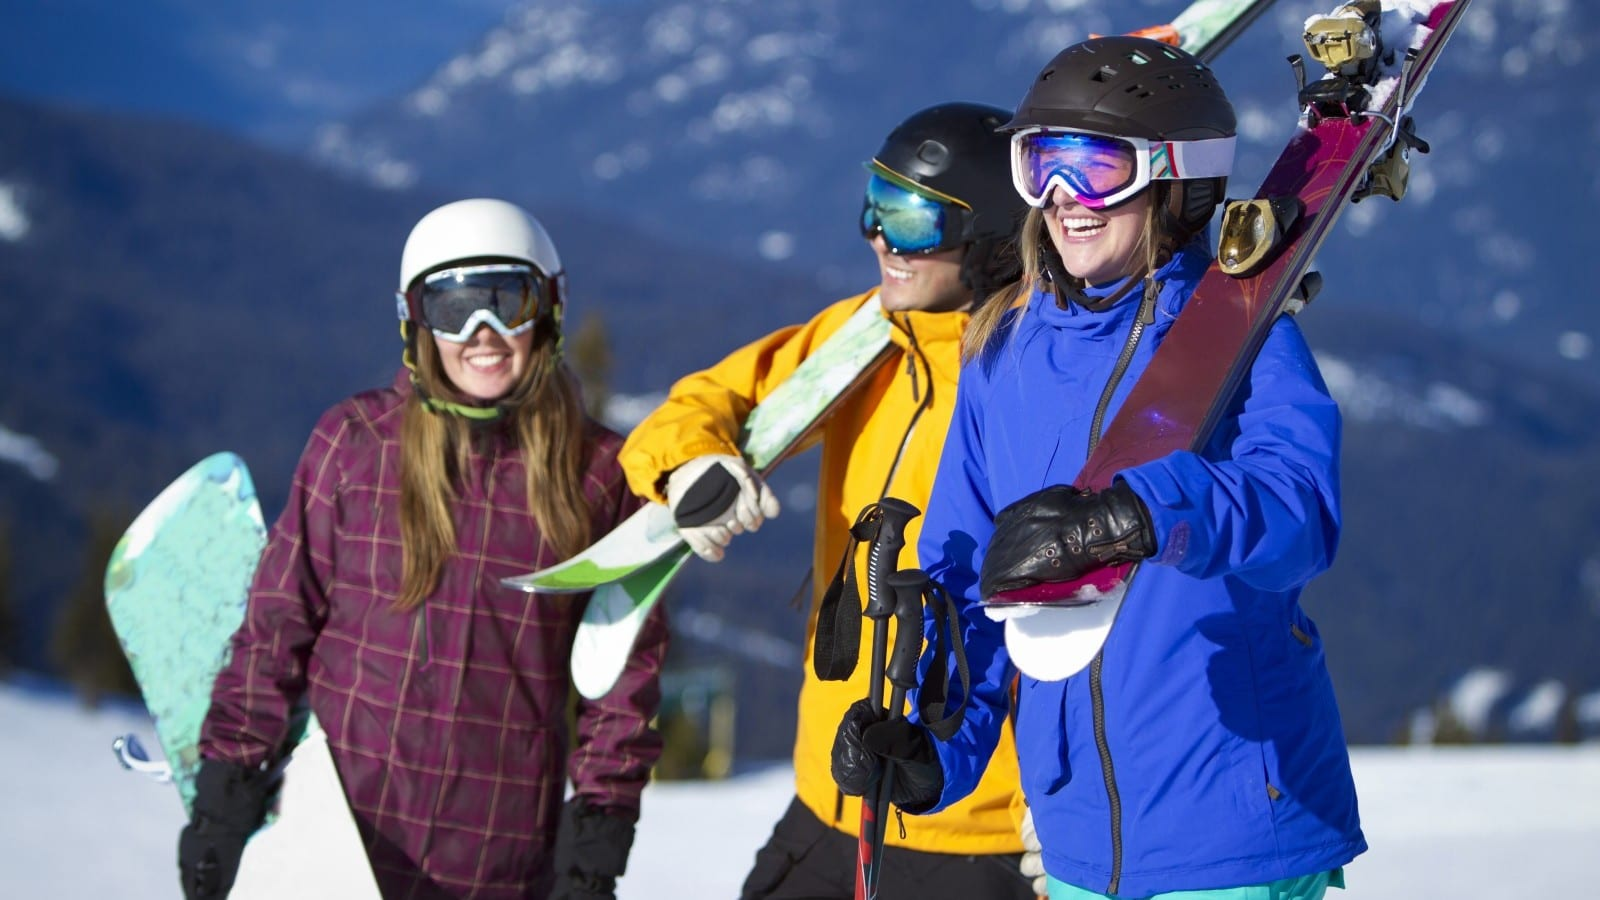 Skiing And Snowboarding Stock Photo